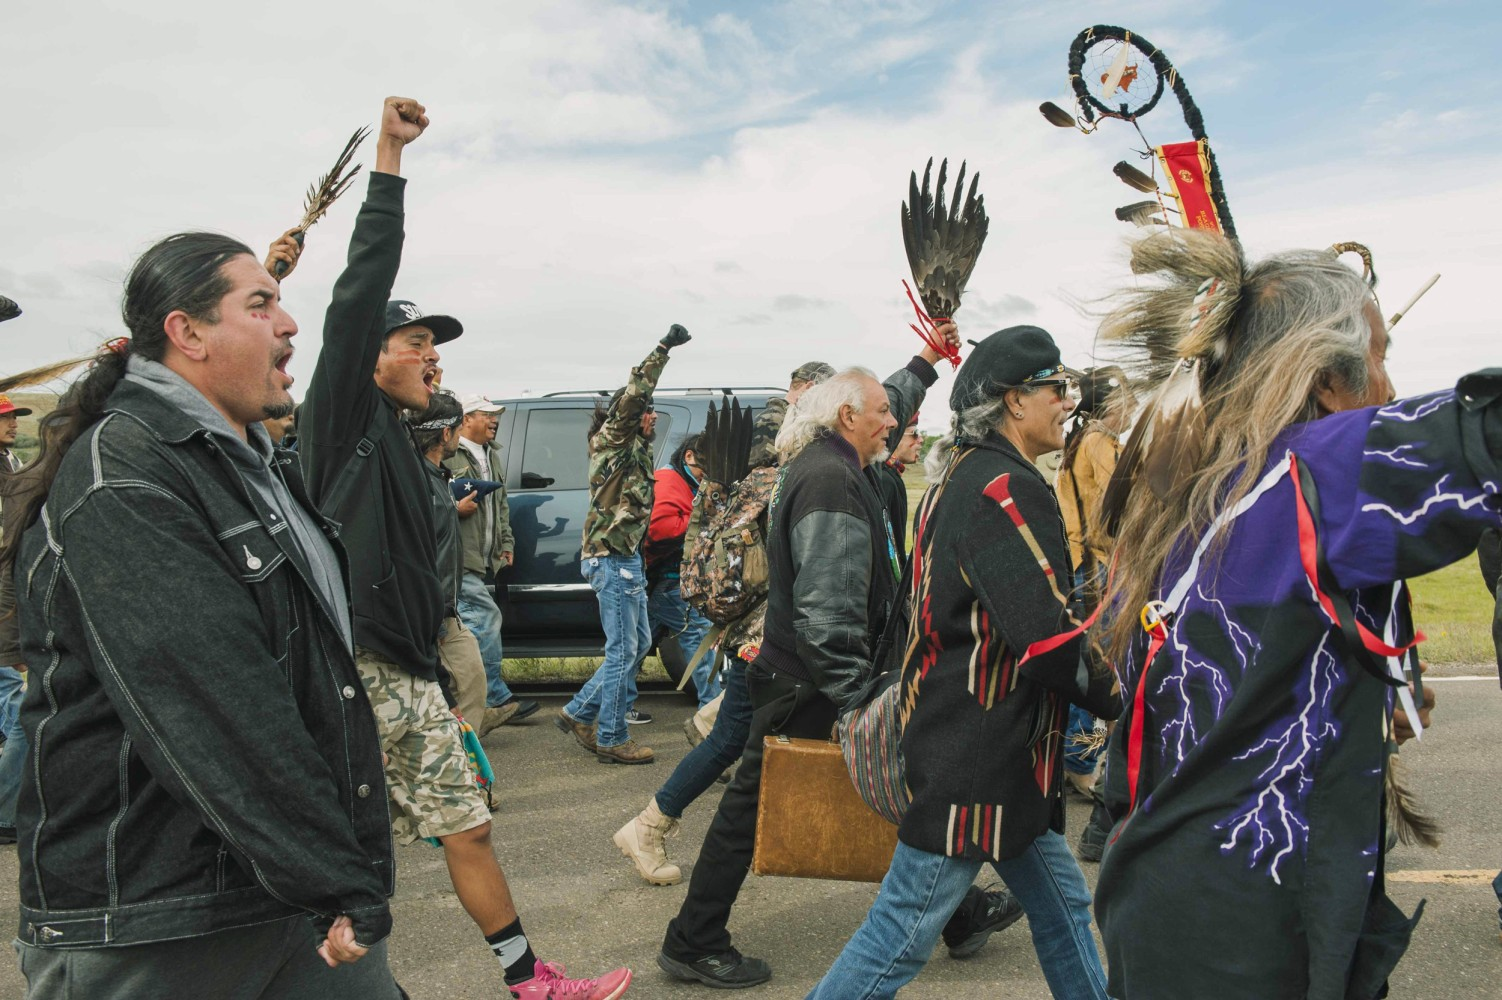 Dakota Standing Rock Sioux Access Pipeline